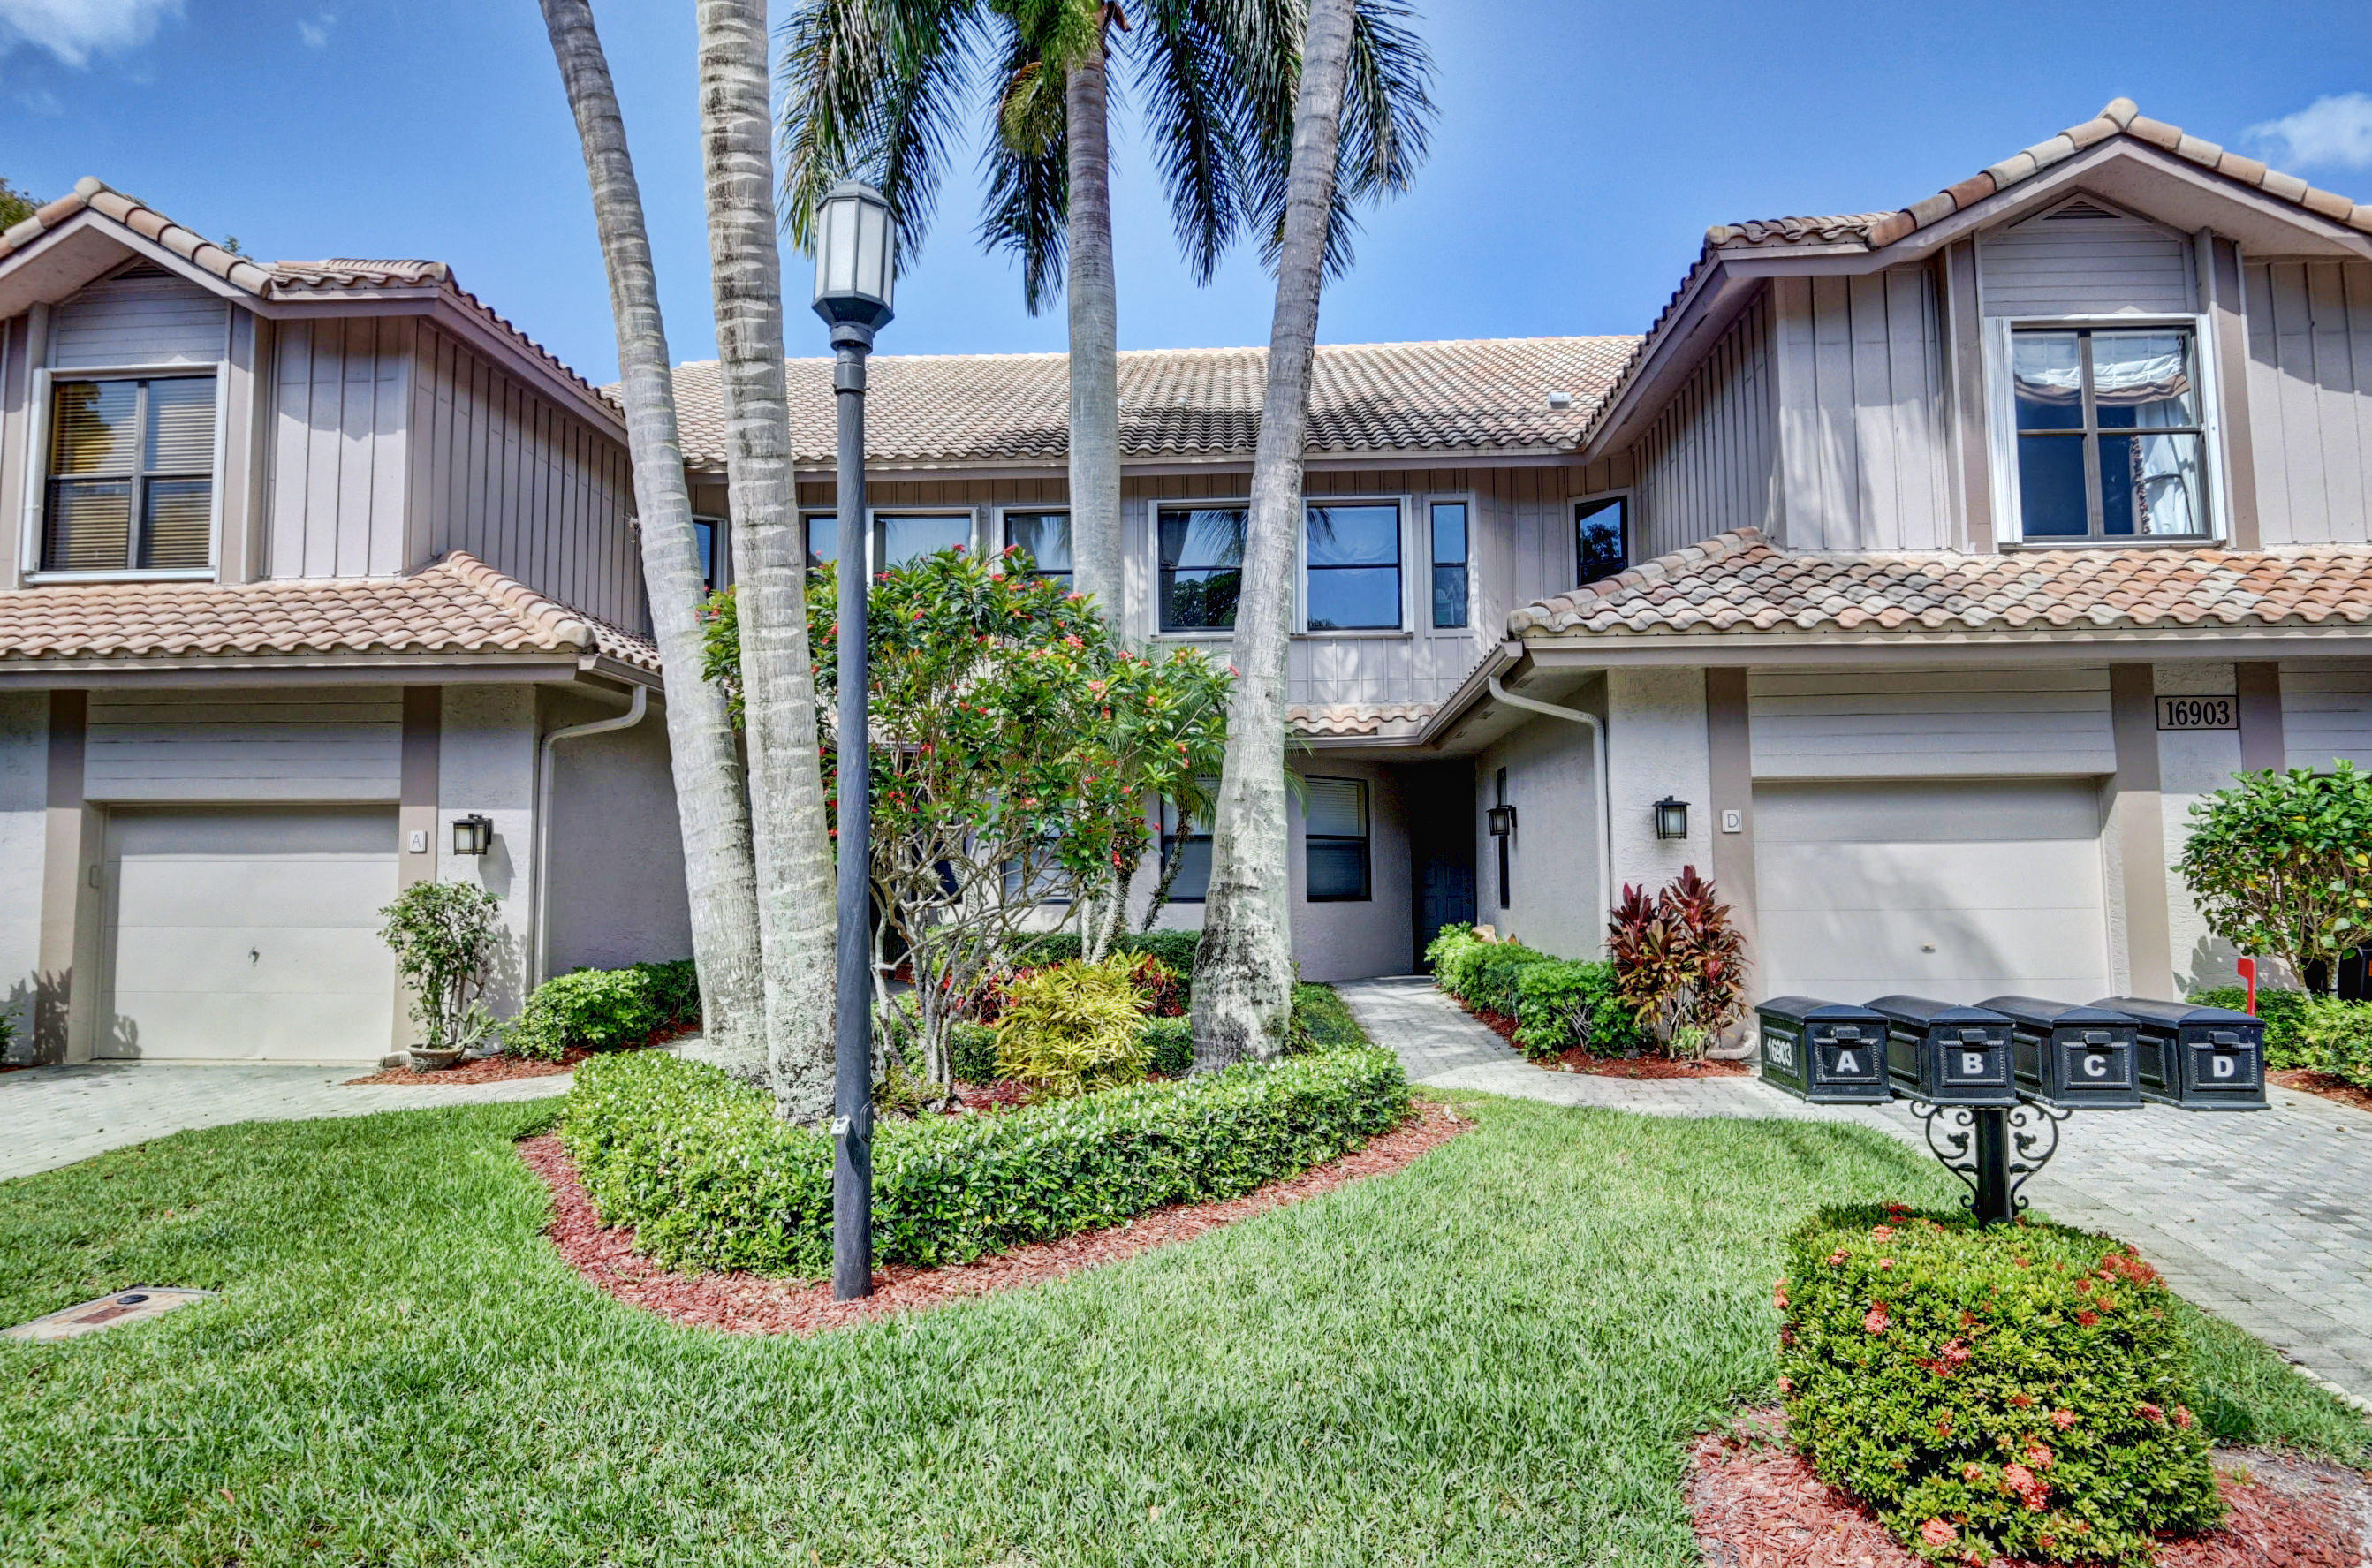 16903 Isle Of Palms Drive C  Delray Beach, FL 33484